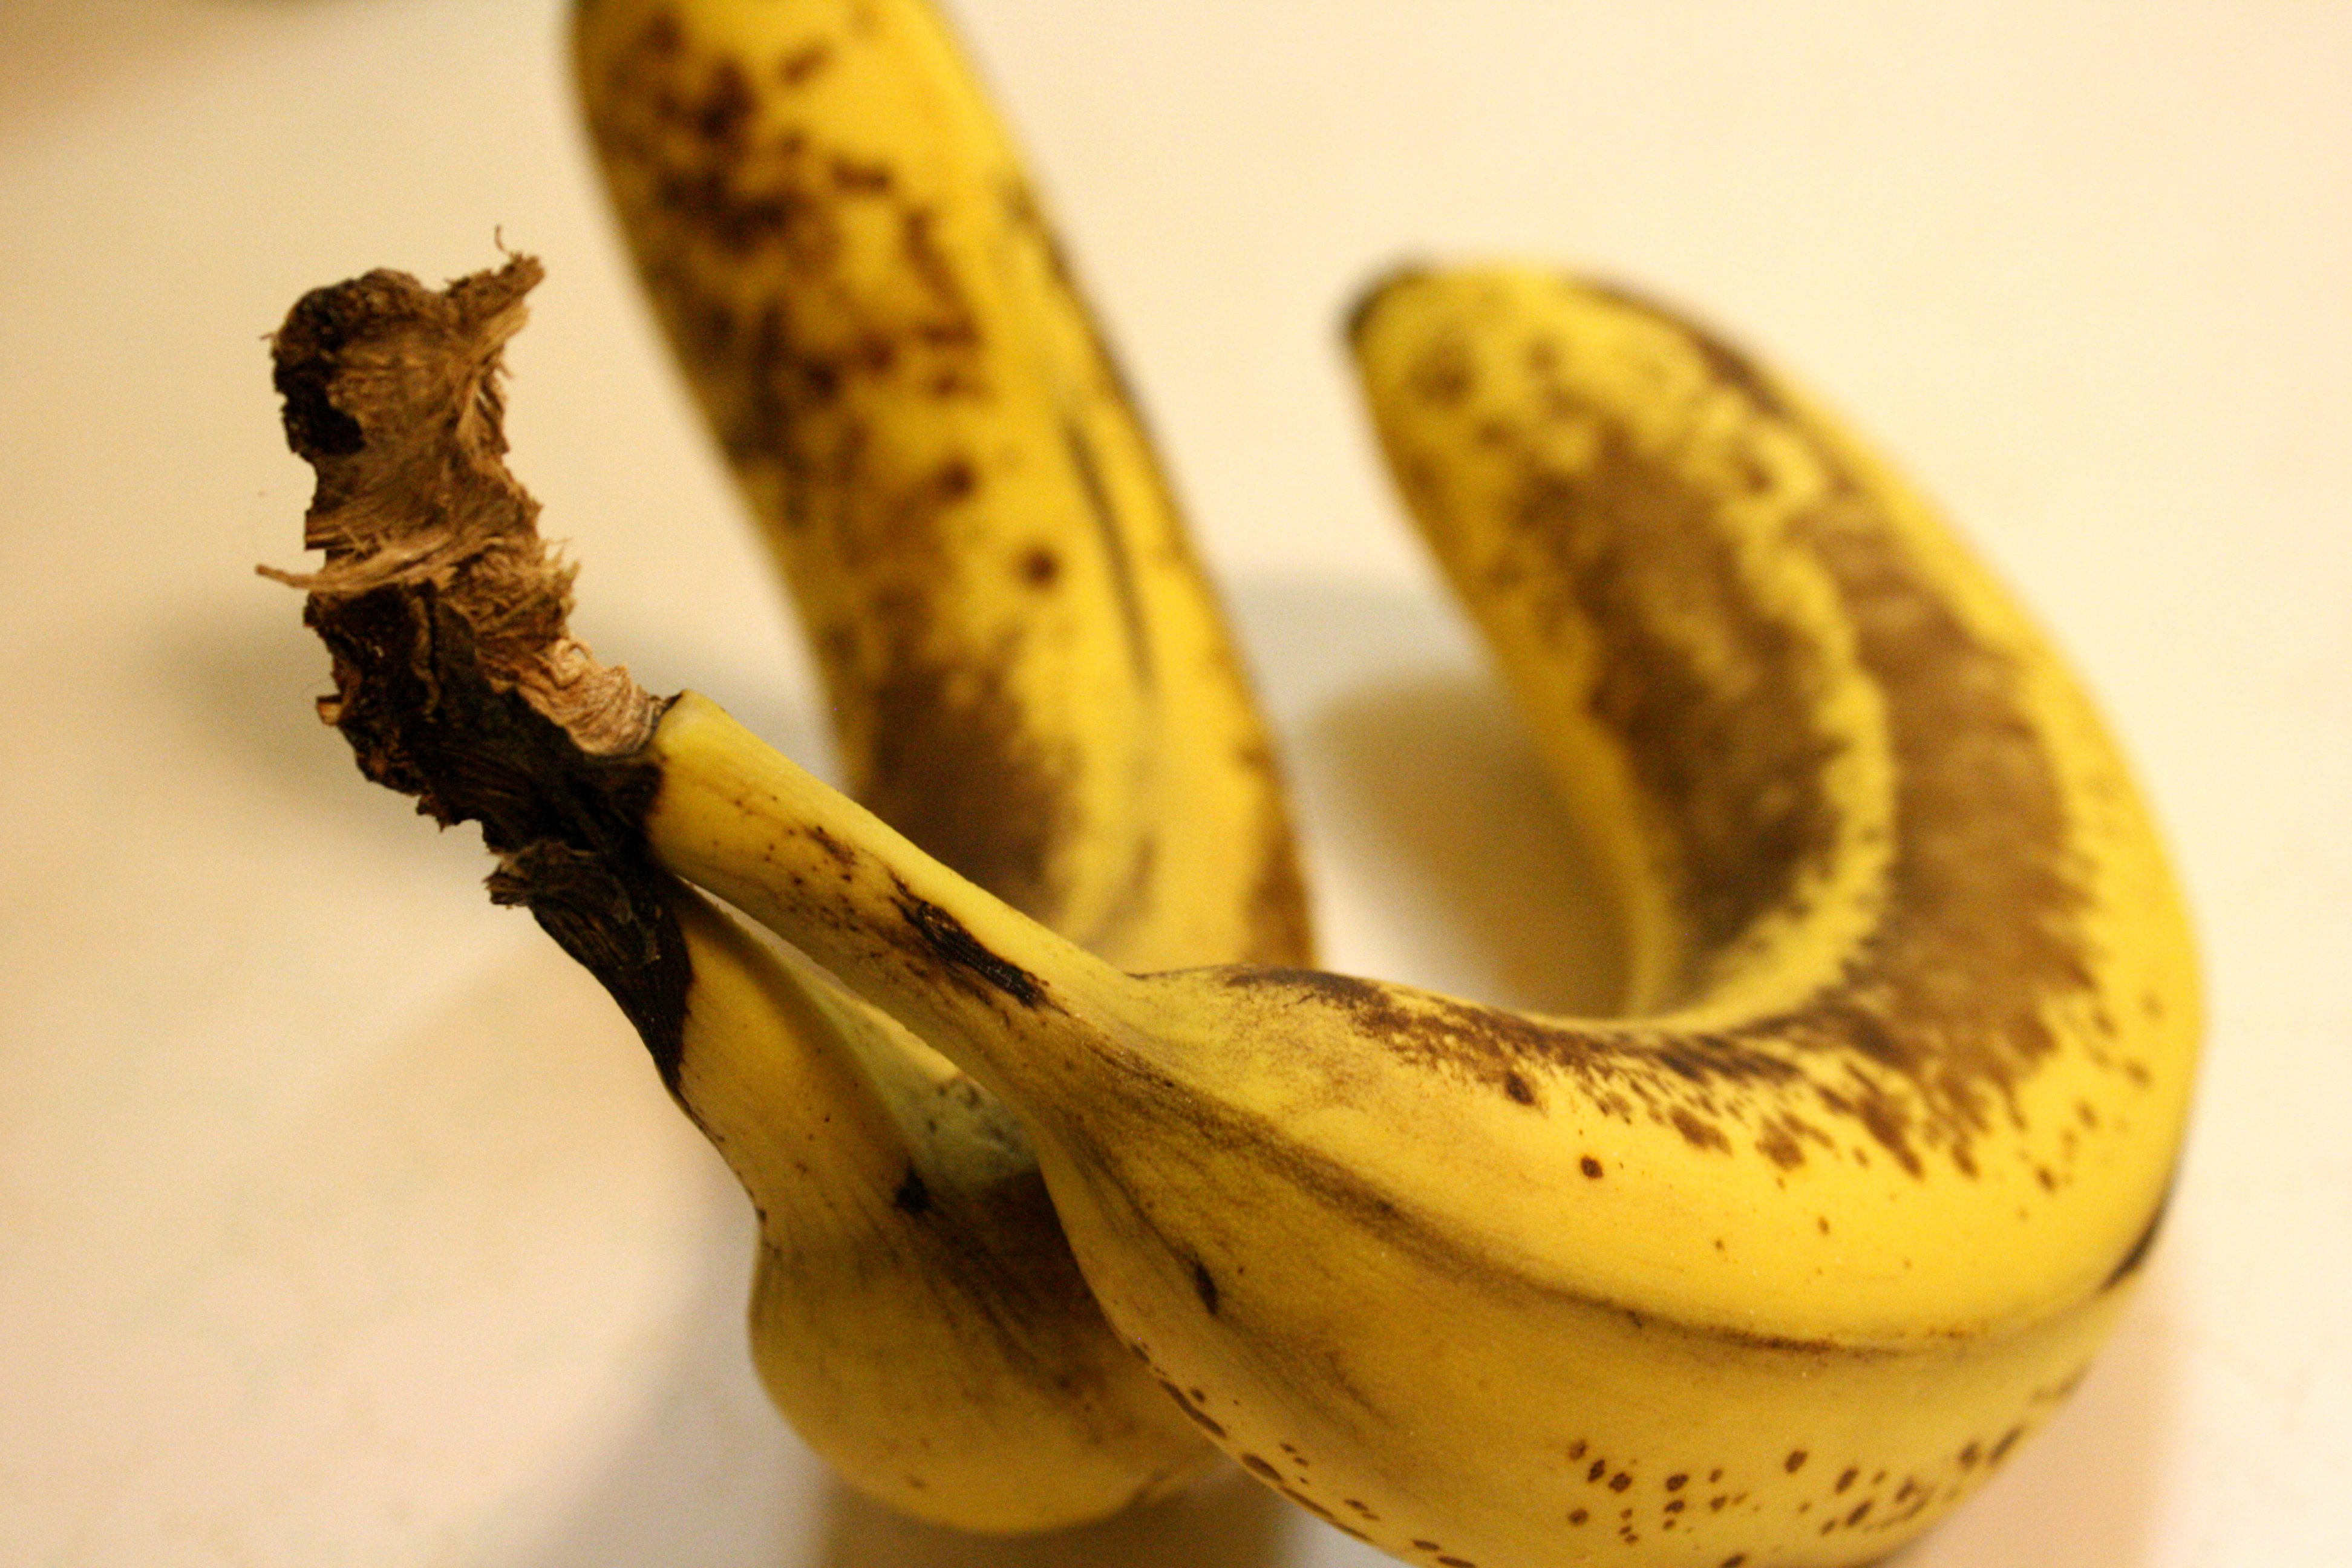 Ripen bananas by putting them in the oven for 40 minutes at 300F